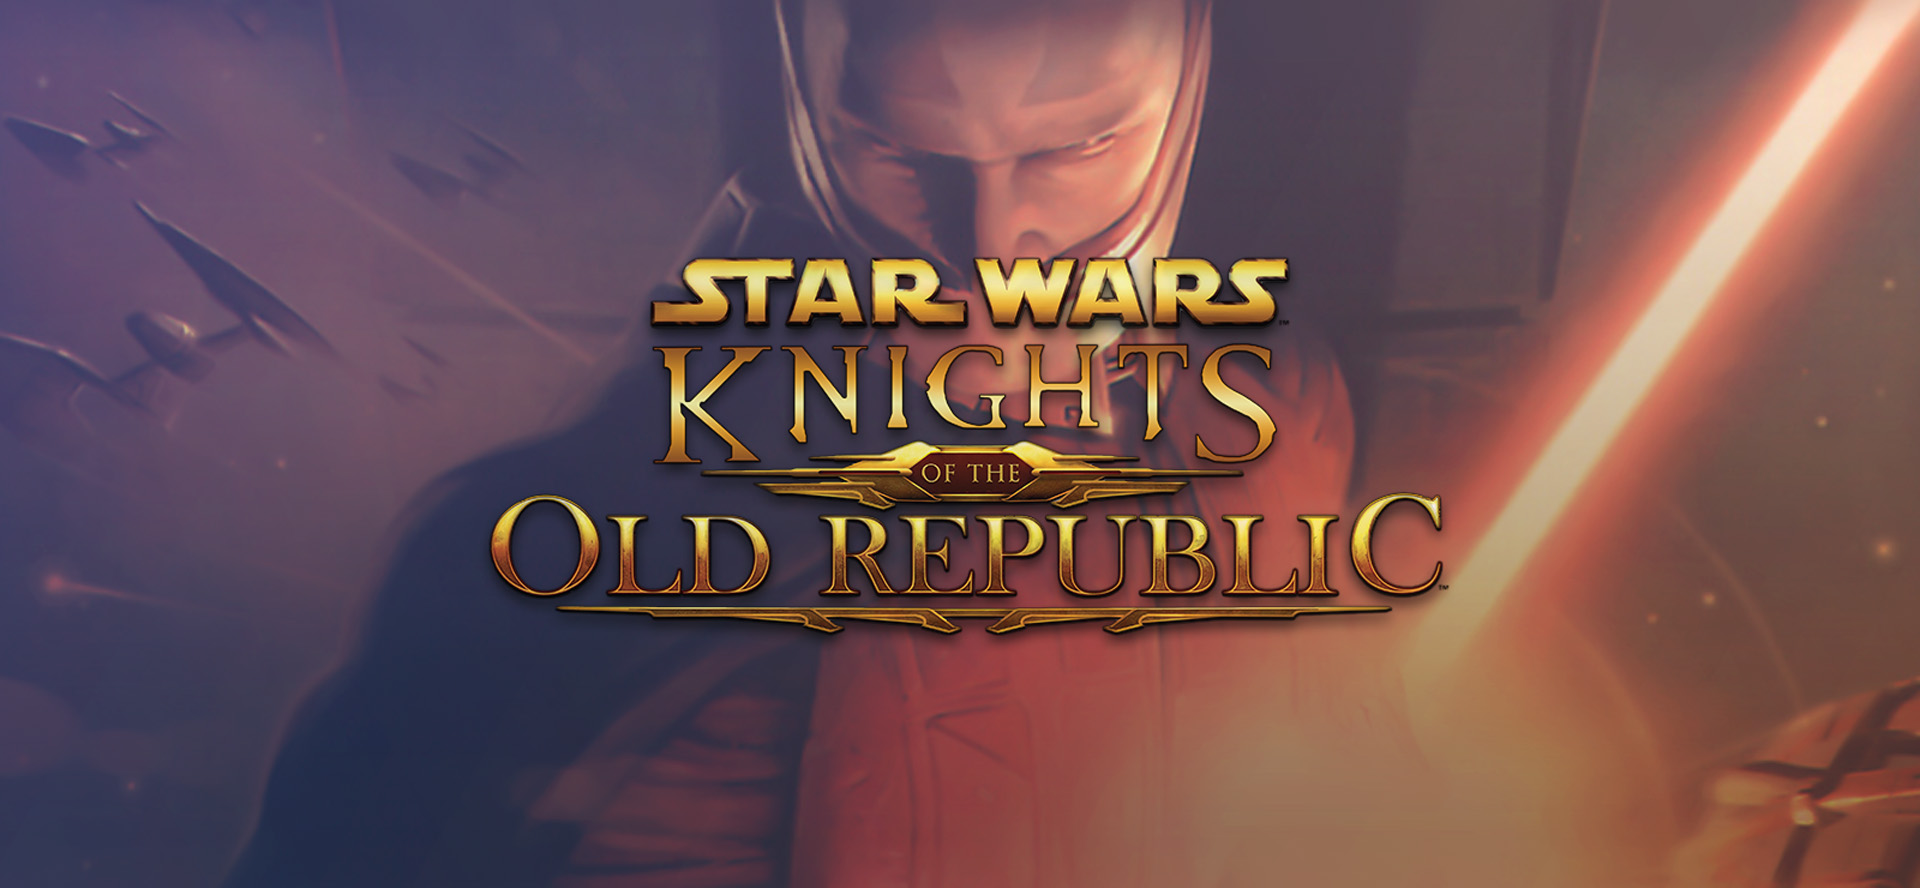 Star wars knights of the old republic wookieepedia fandom development star wars knights of the old republic fandeluxe Gallery